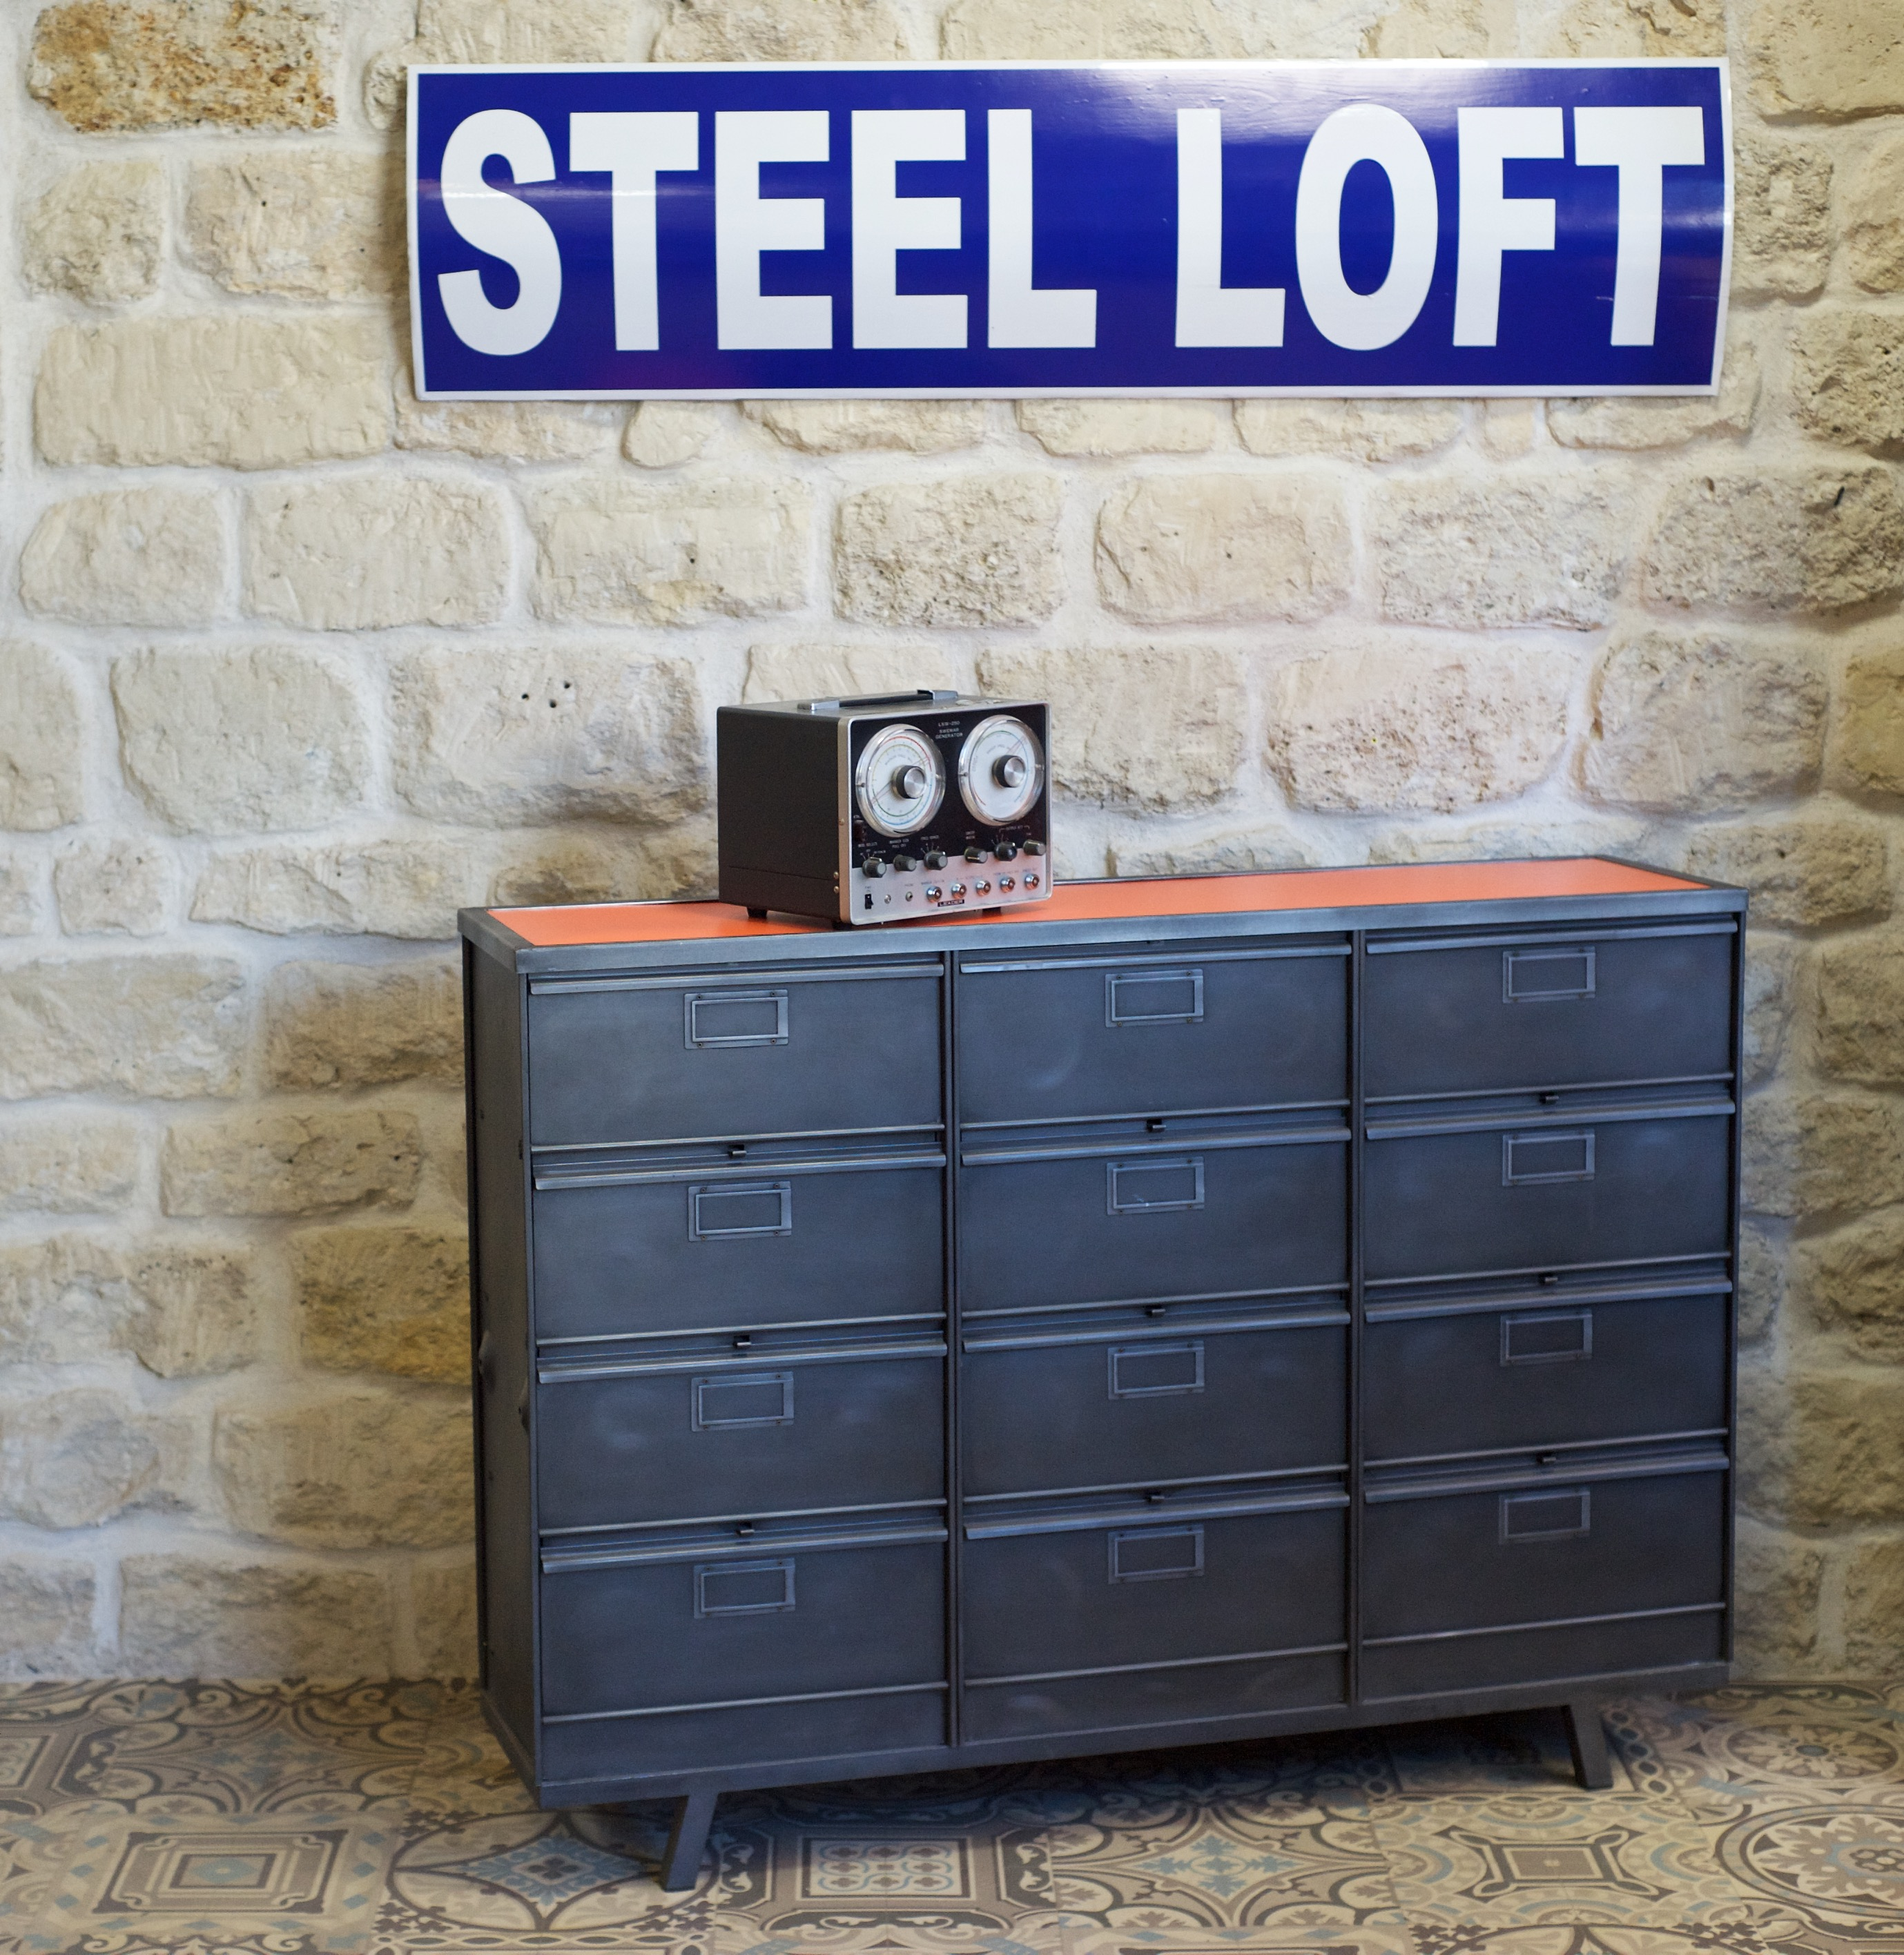 Meuble chaussure industriel casiers roneo steel loft paris steel loft paris - Meuble metal industriel loft ...